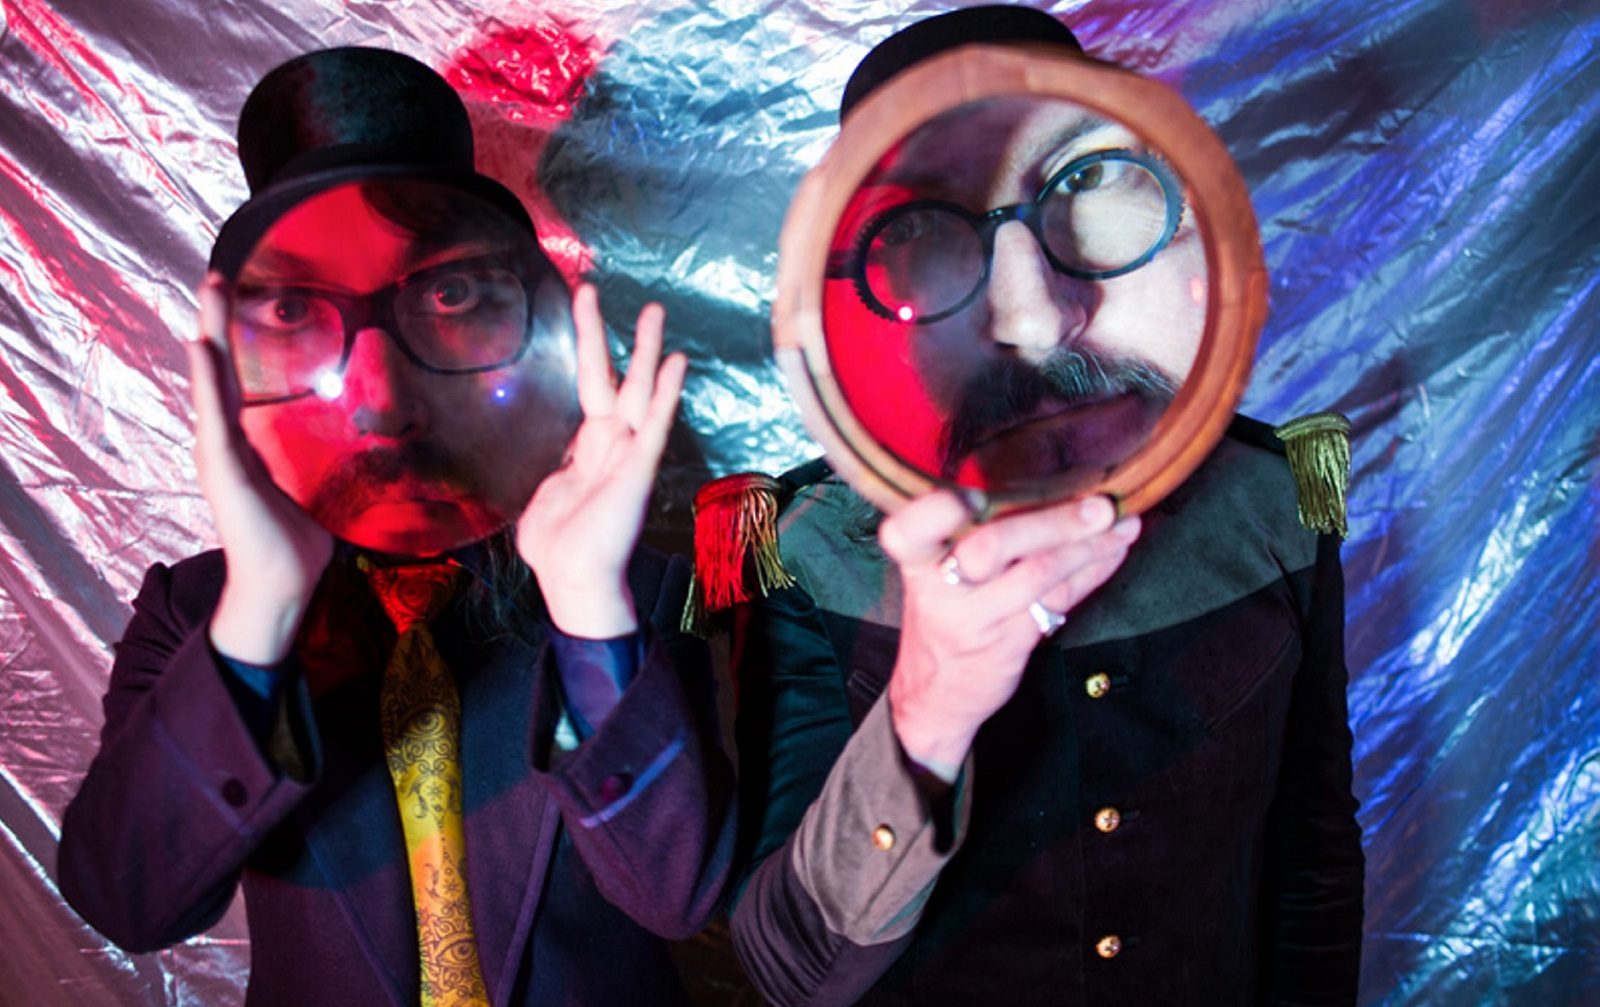 Social media drama stemmed from misunderstandings before the Claypool Lennon Delirium show at Canalside.